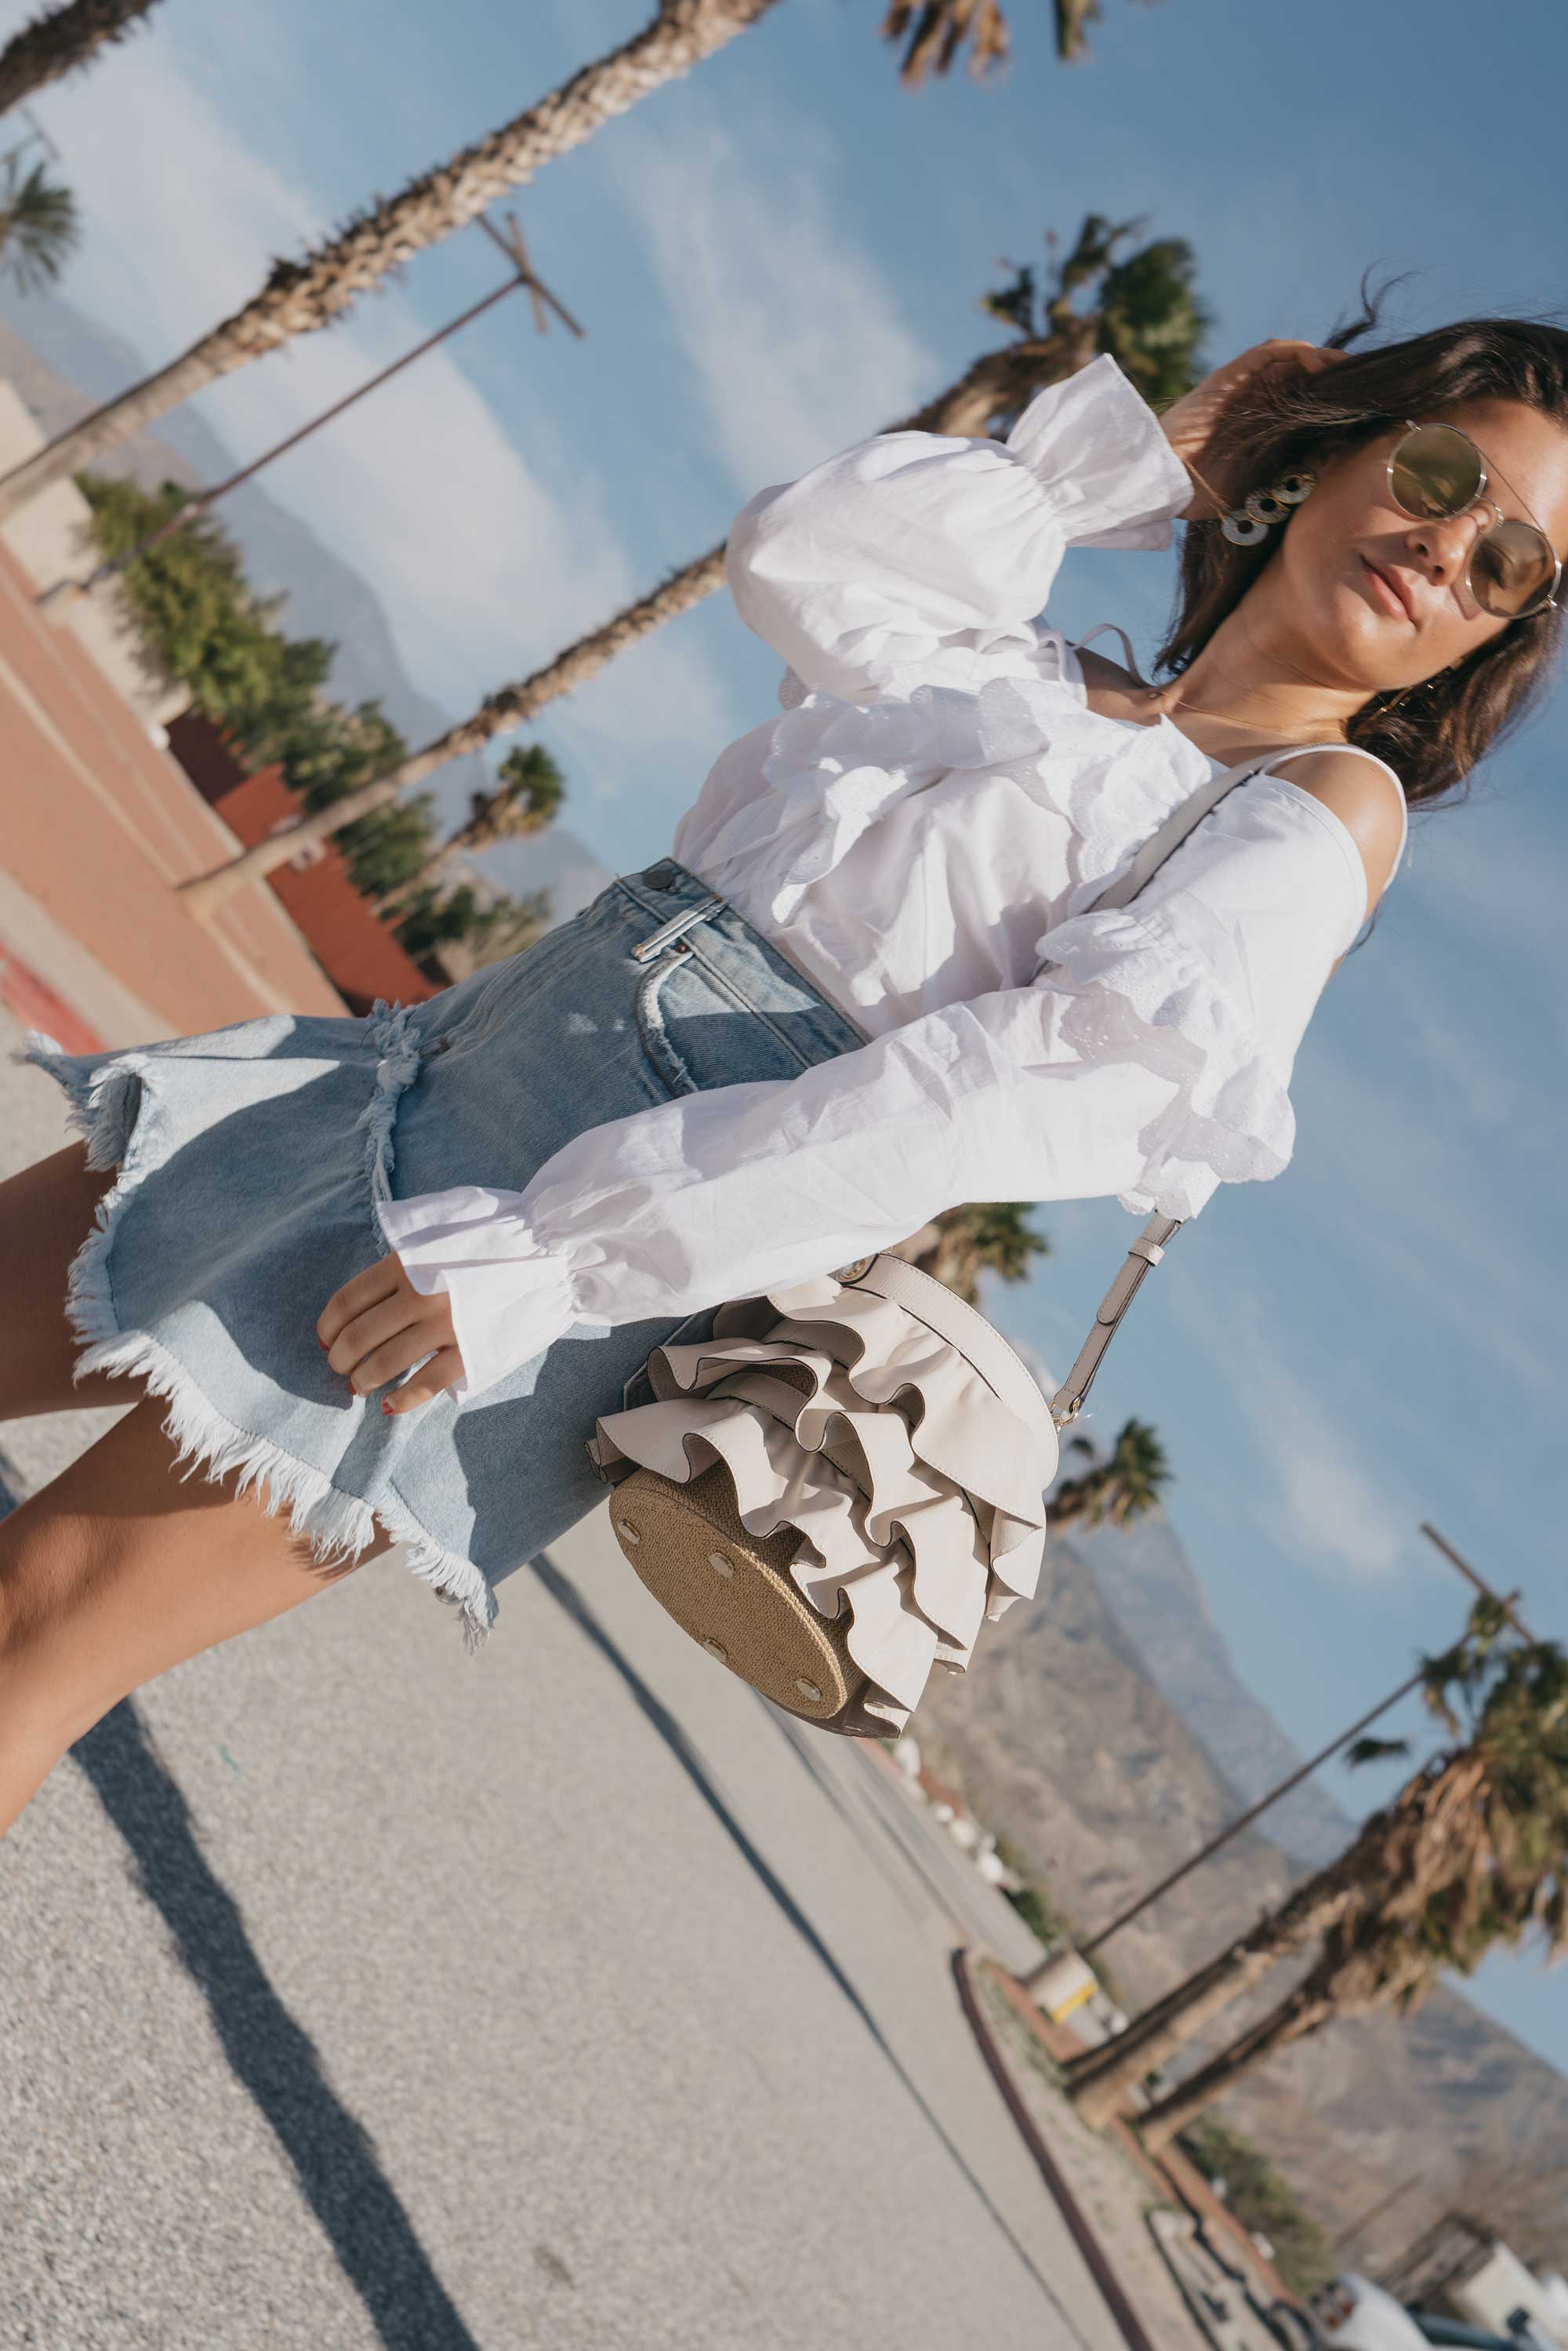 Festival-outfit-off-the-shoulder-ruffle-blouse-ruffle-denim-skirt-cabazon-dinosaurs4.jpg